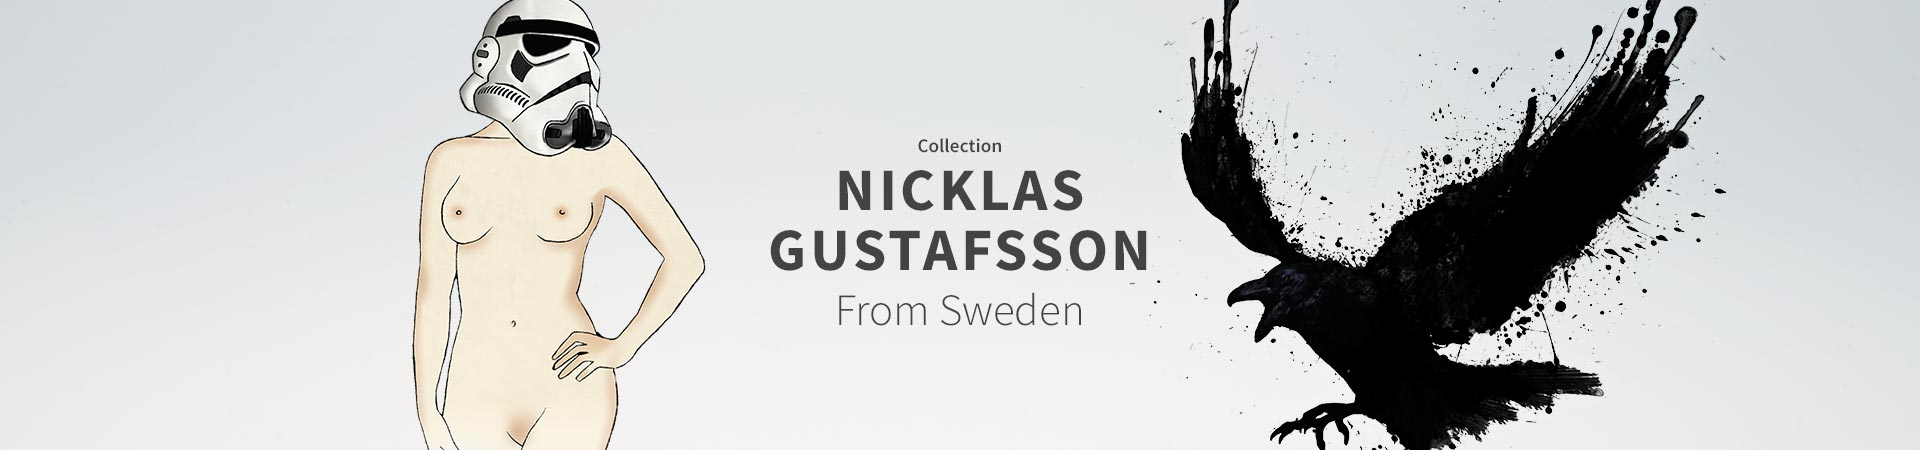 Collection Nicklas Gustafsson